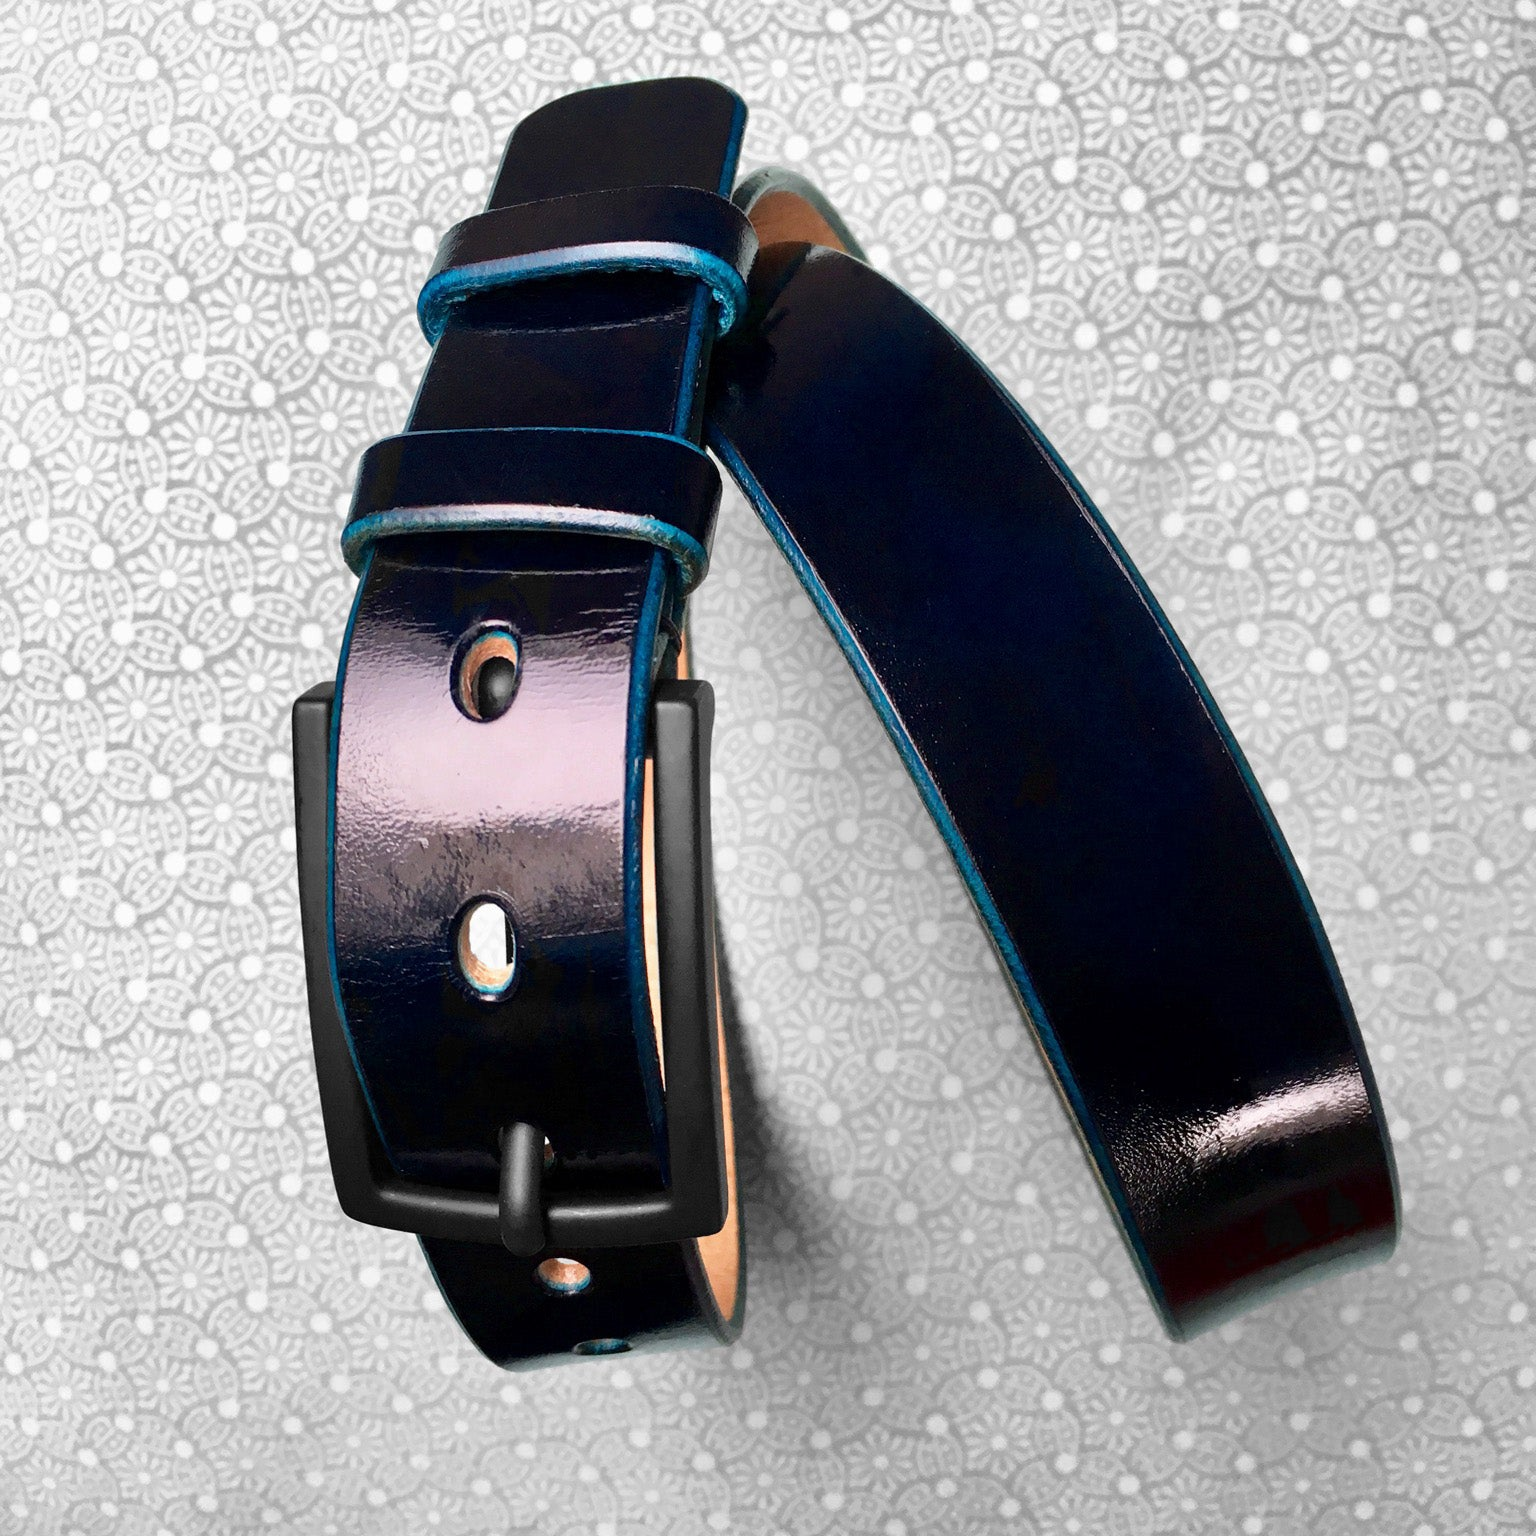 Stark Leathergoods Stark Leathergoods belt, hand-dyed, midnight black, midnight blue, vegetable tanned leather